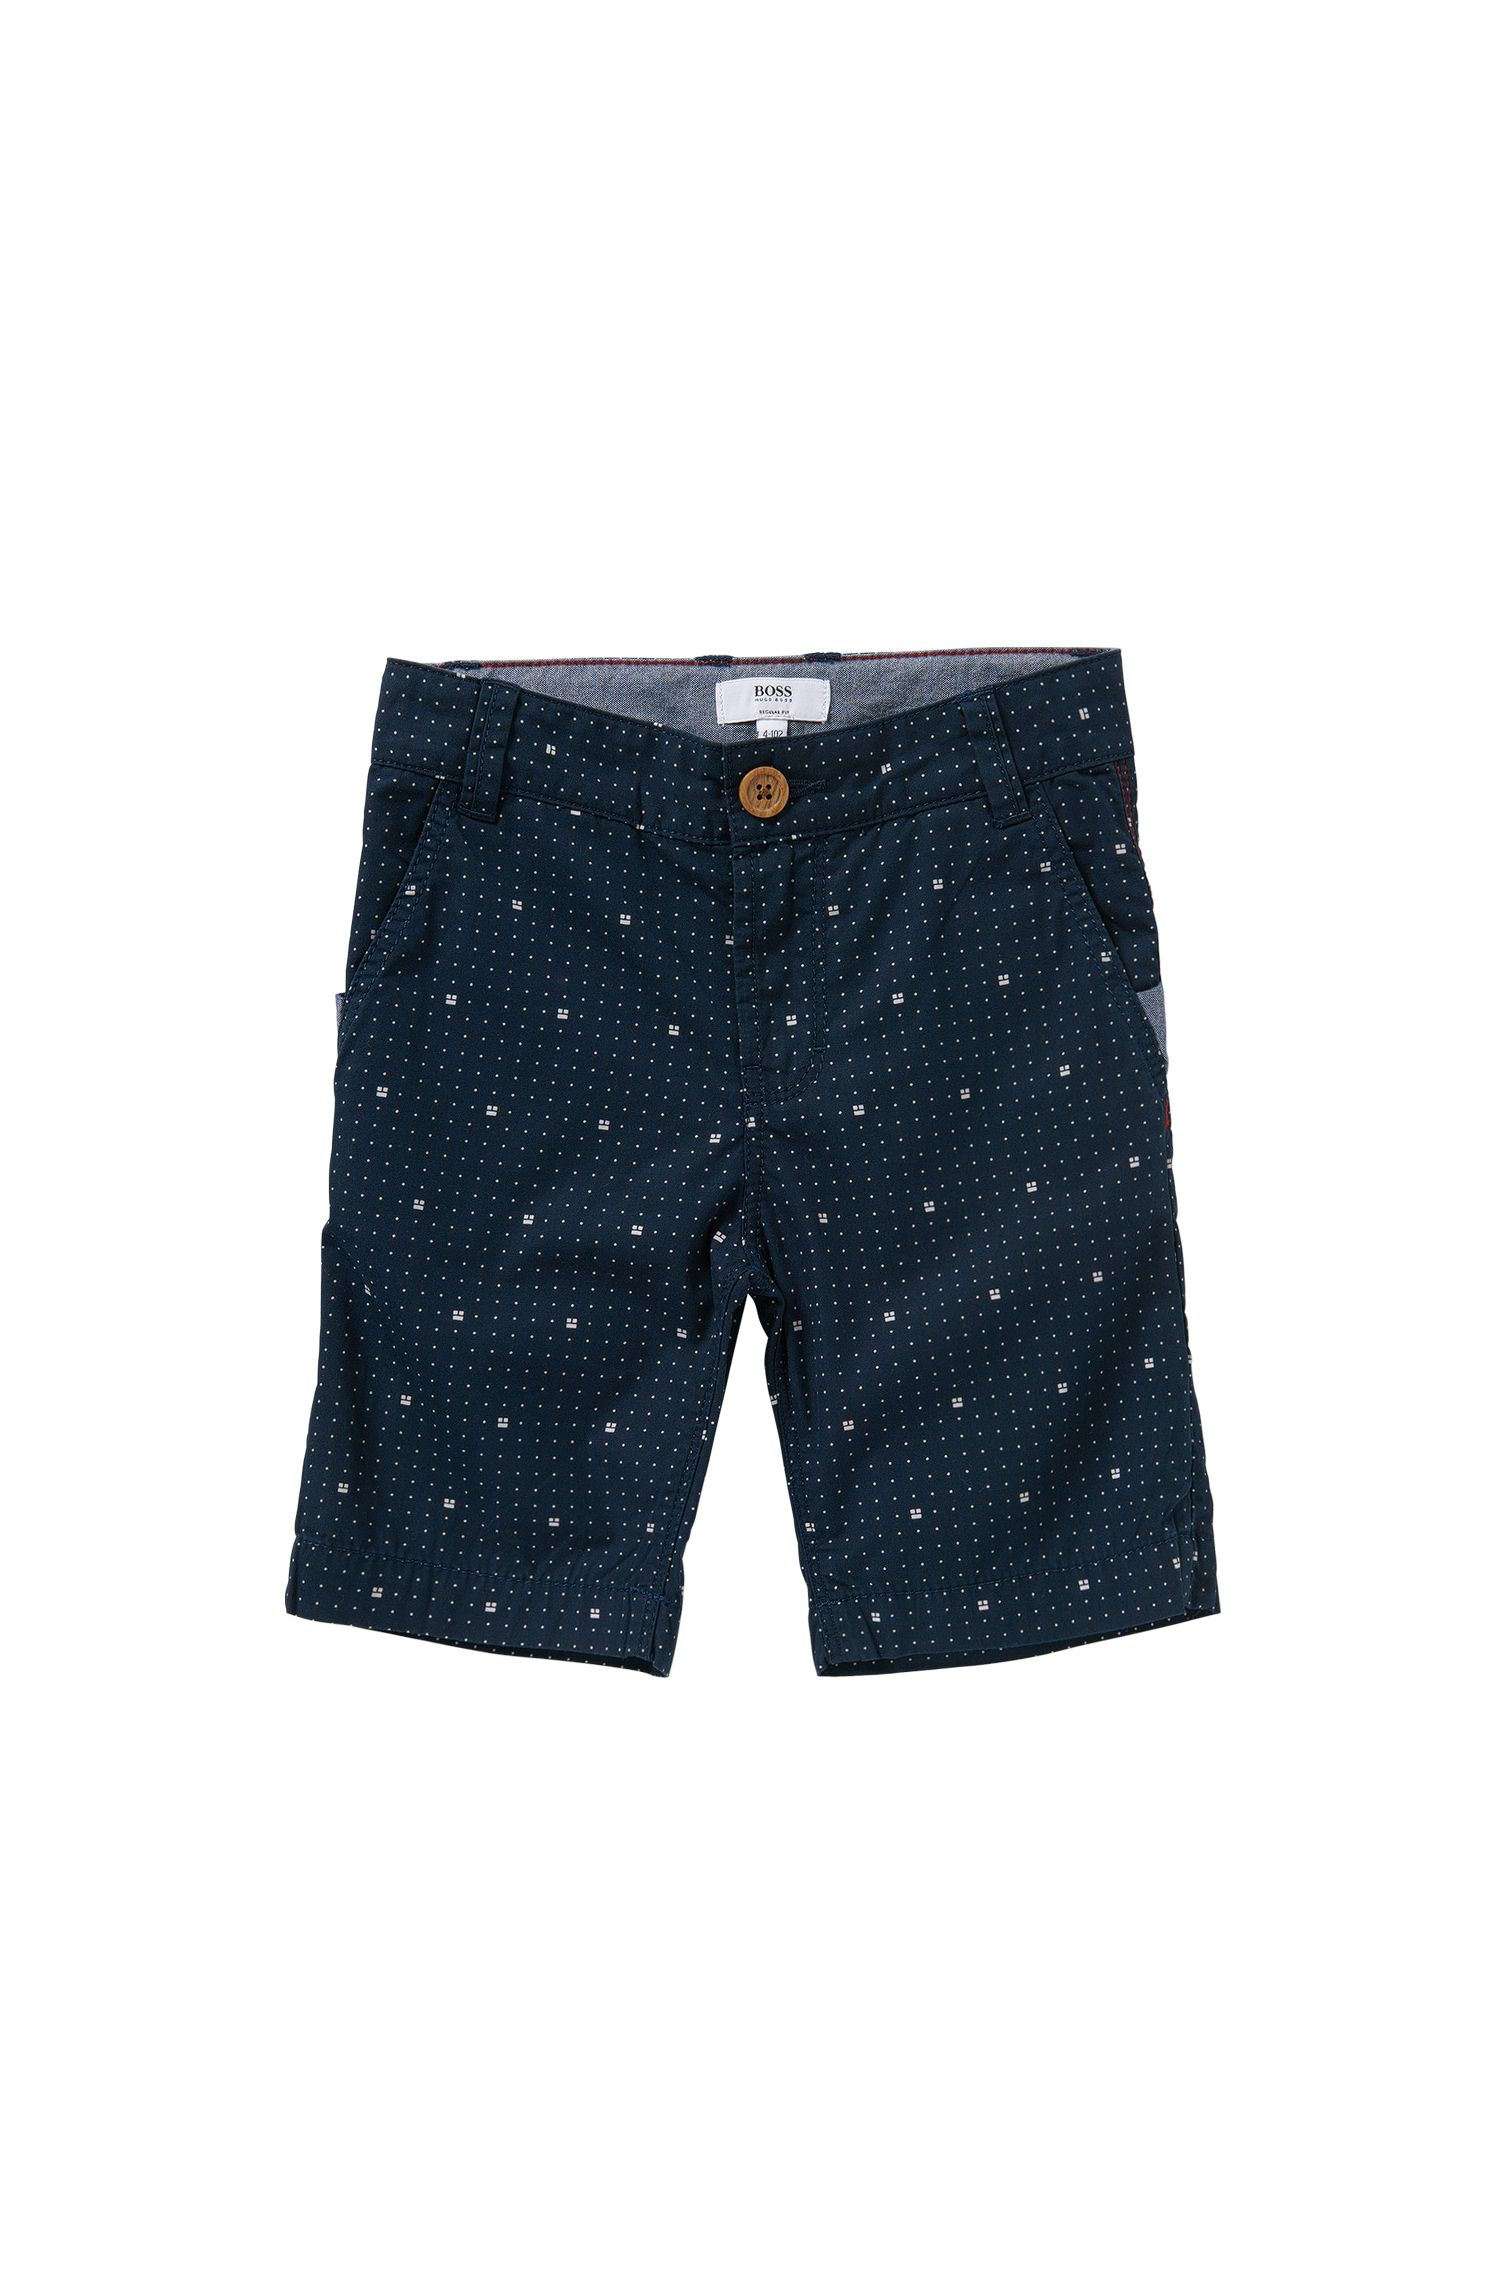 Regular-Fit Kids-Shorts aus gemusterter Baumwolle: 'J24408'